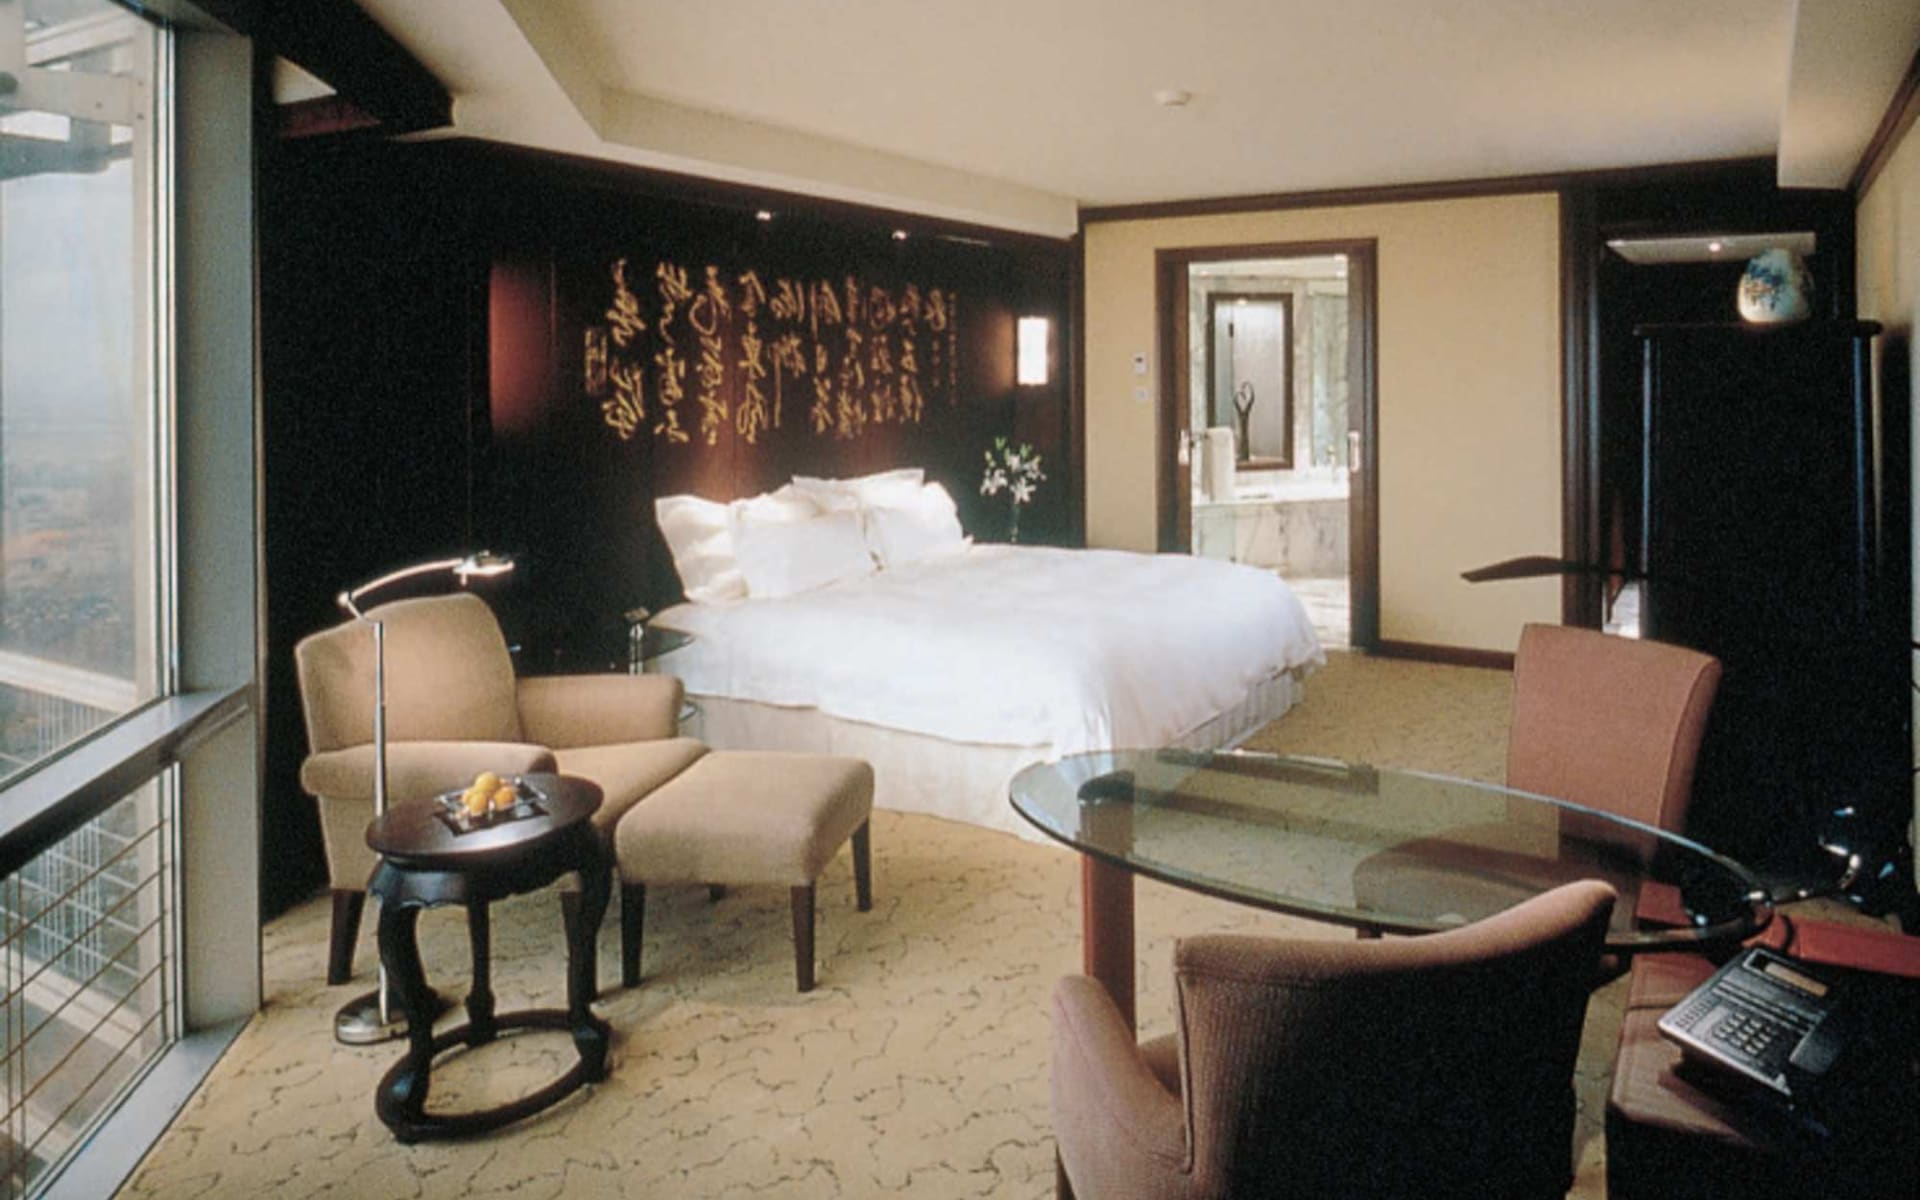 Hotel Grand Hyatt in Shanghai: Grand Hyatt SHA room